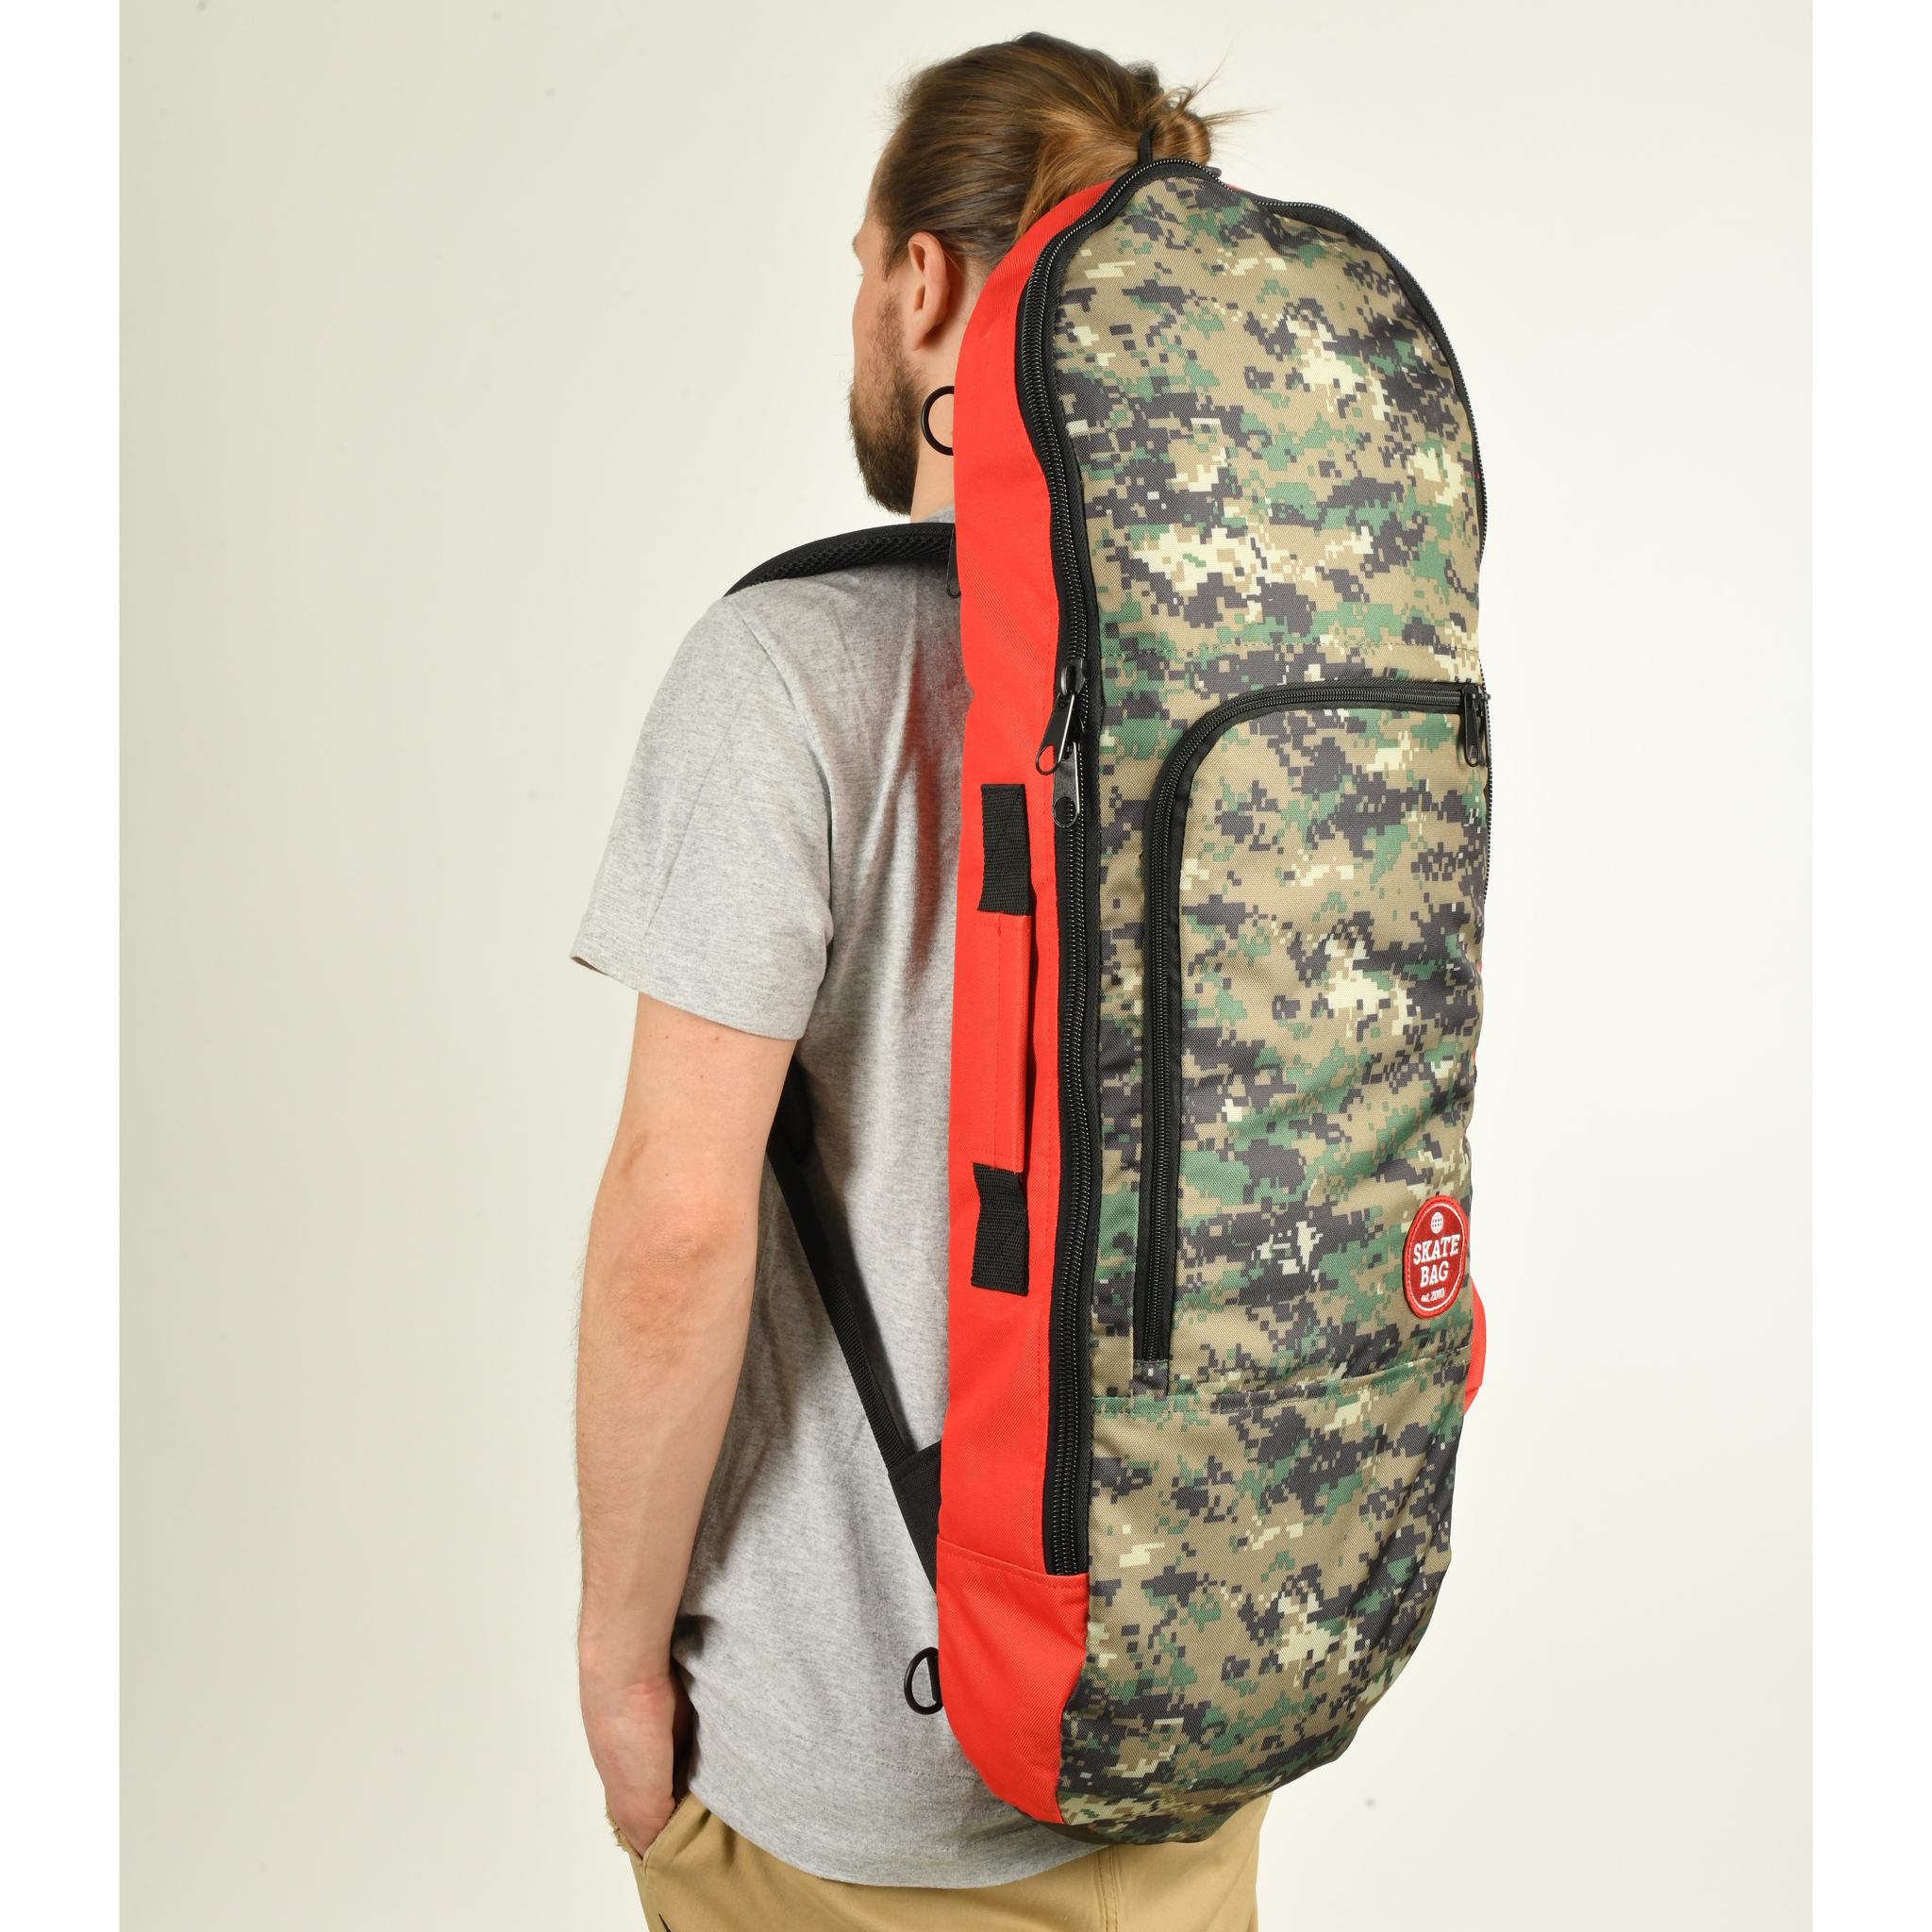 Чехол для скейтборда SKATE BAG Trip (Red/Camo Pix)